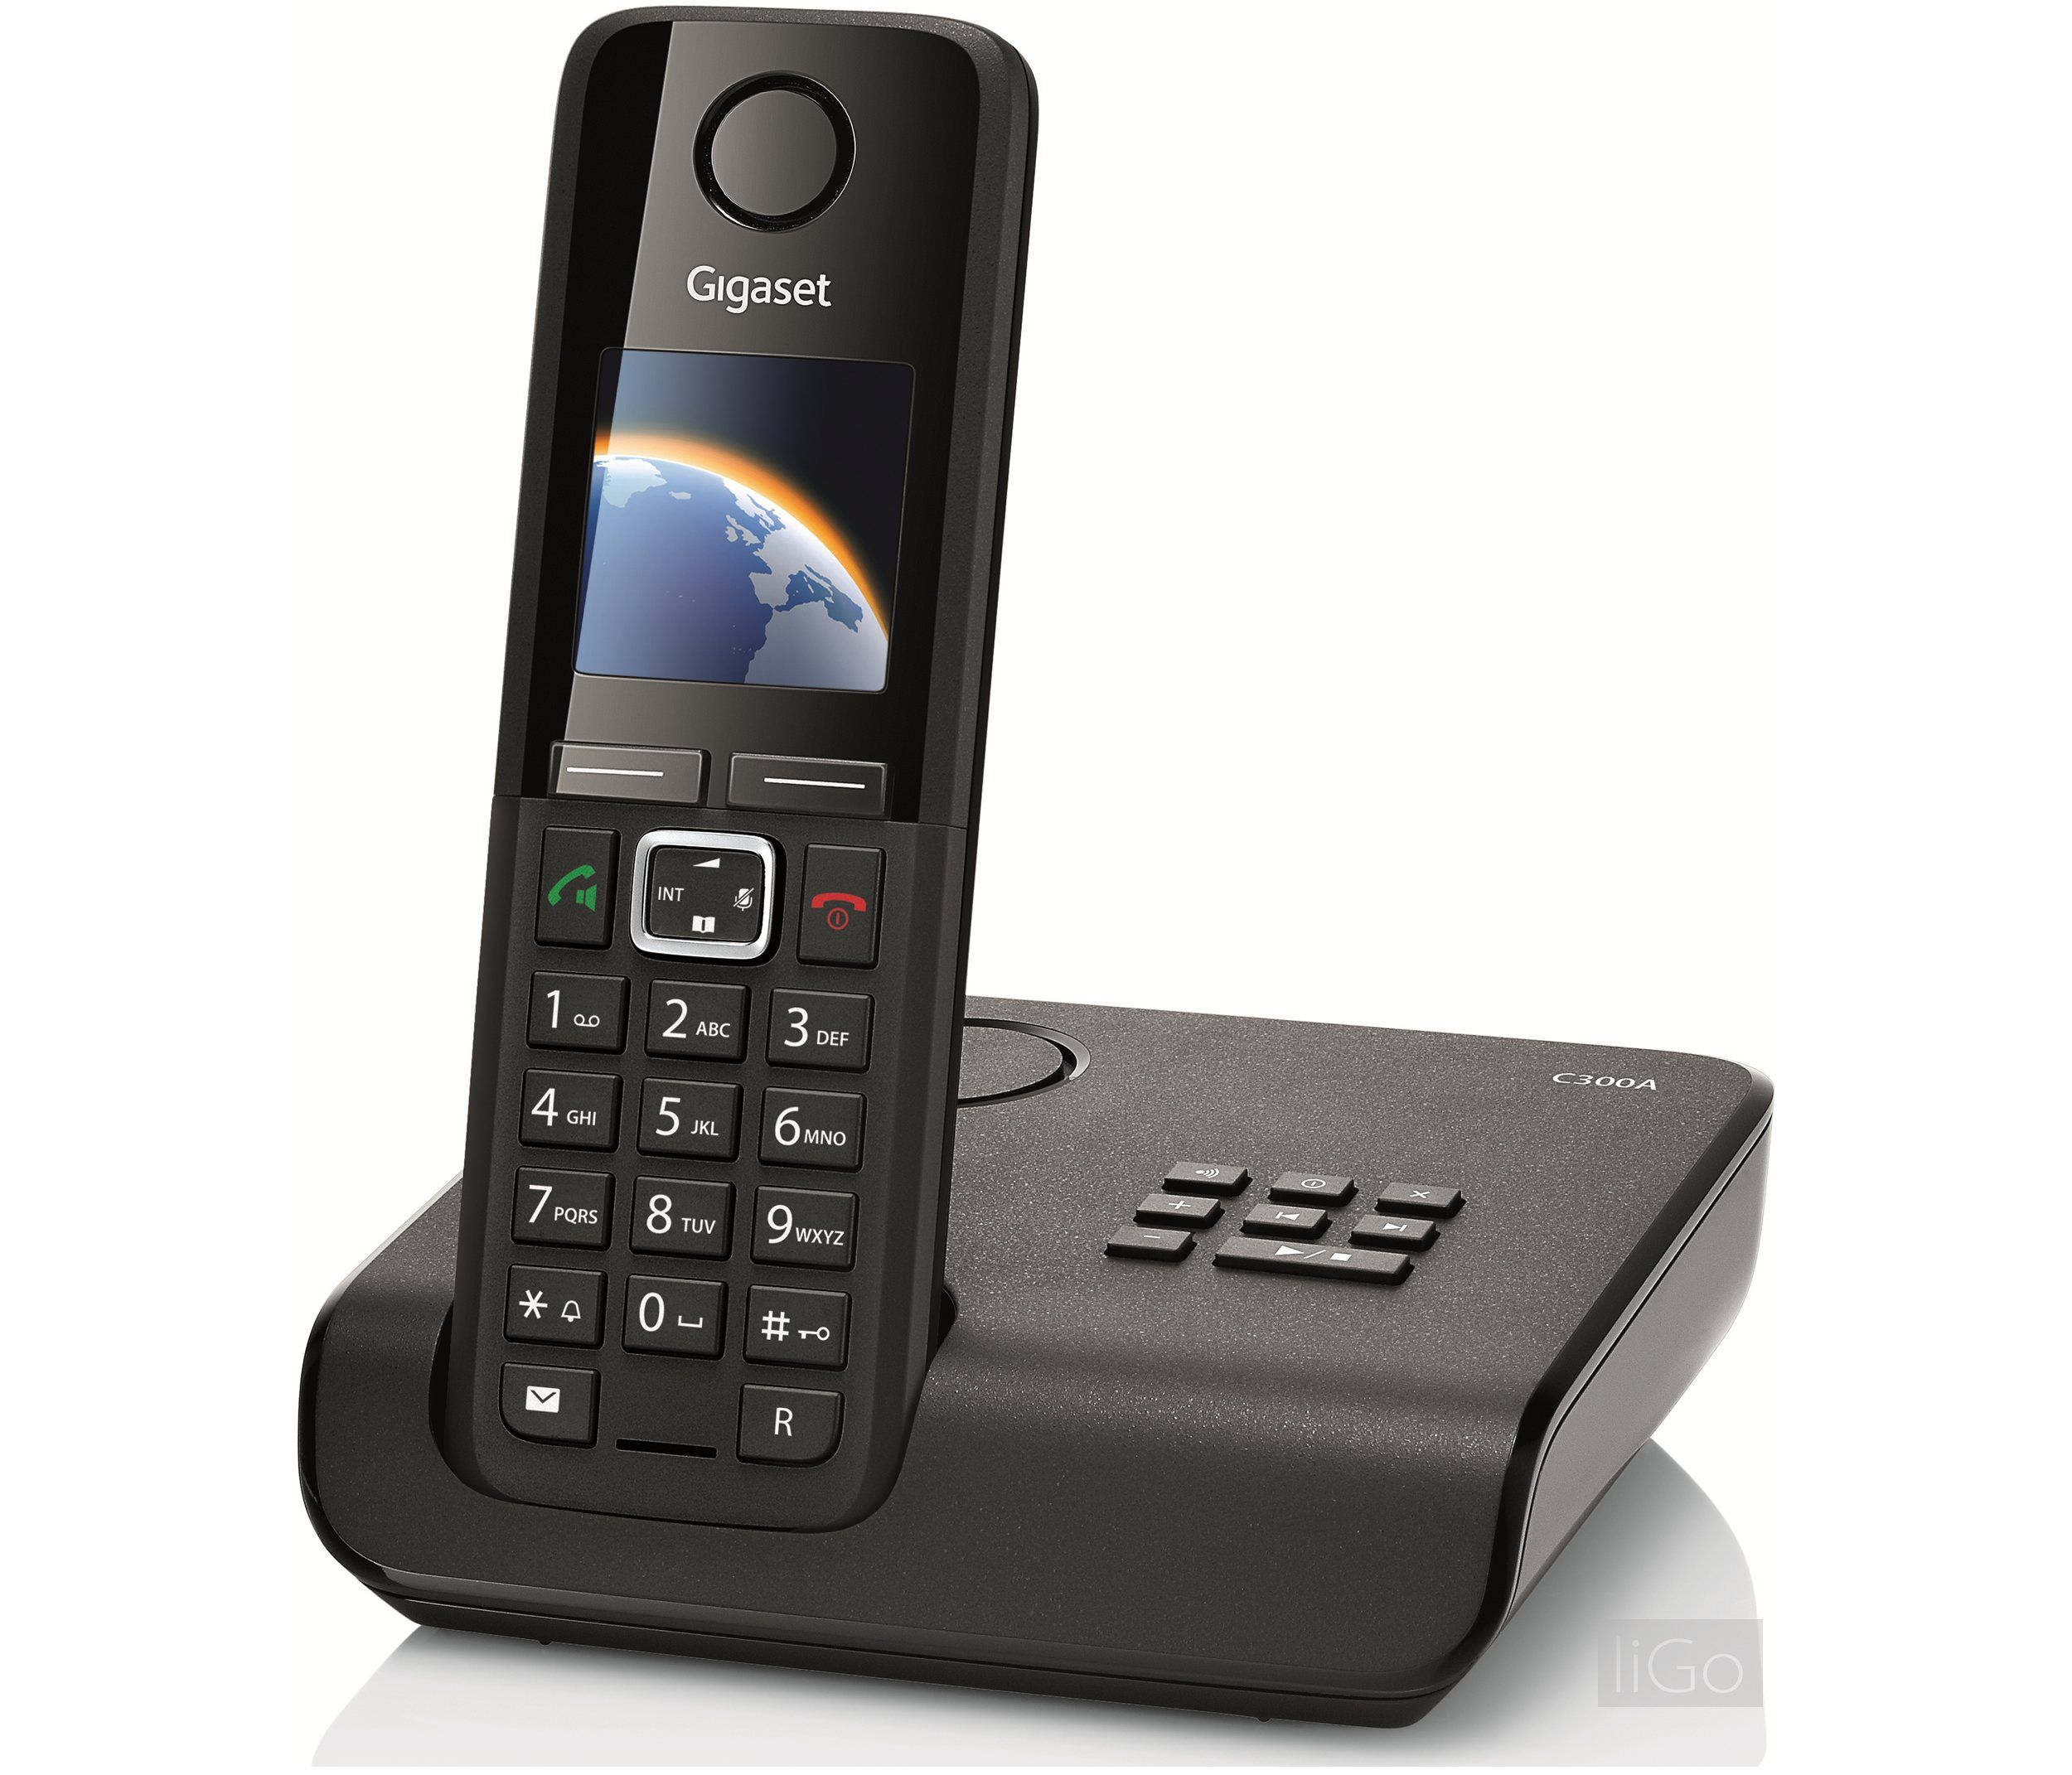 Siemens Gigaset CS3 DECT Cordless Phone U0026 Answer Machine| LiGo Part 94